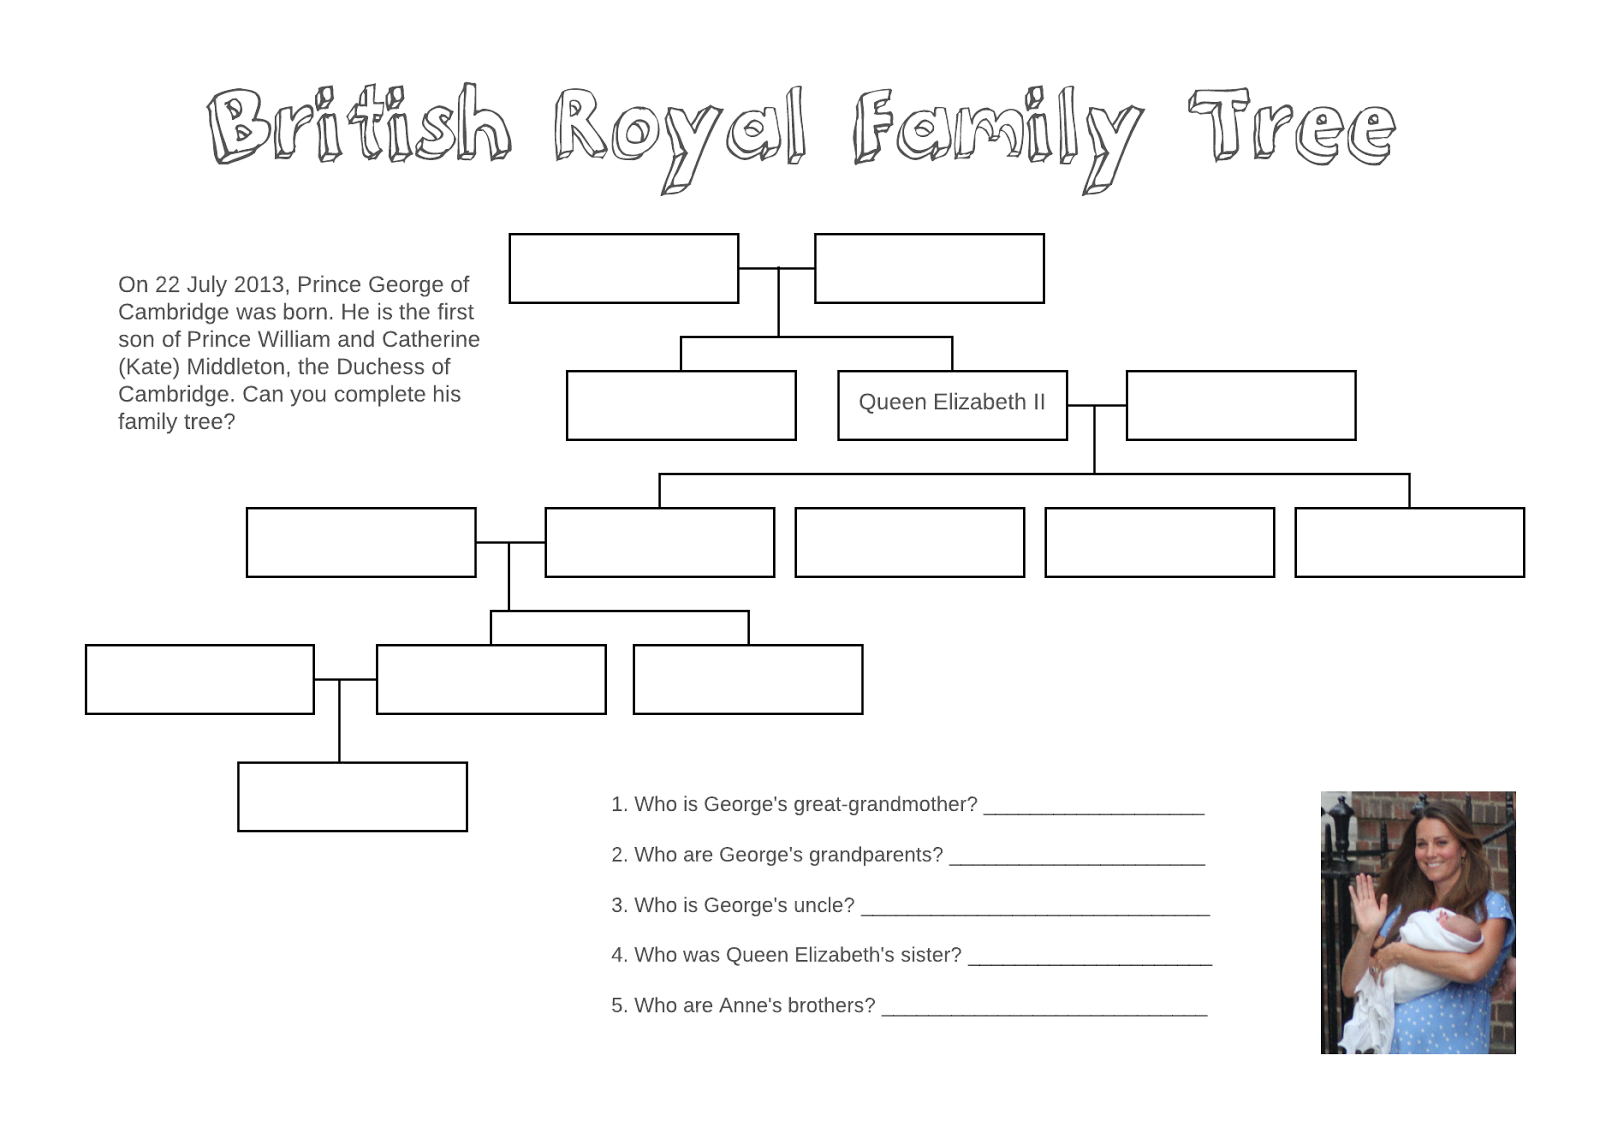 Adventures In Tefl British Royal Family Tree